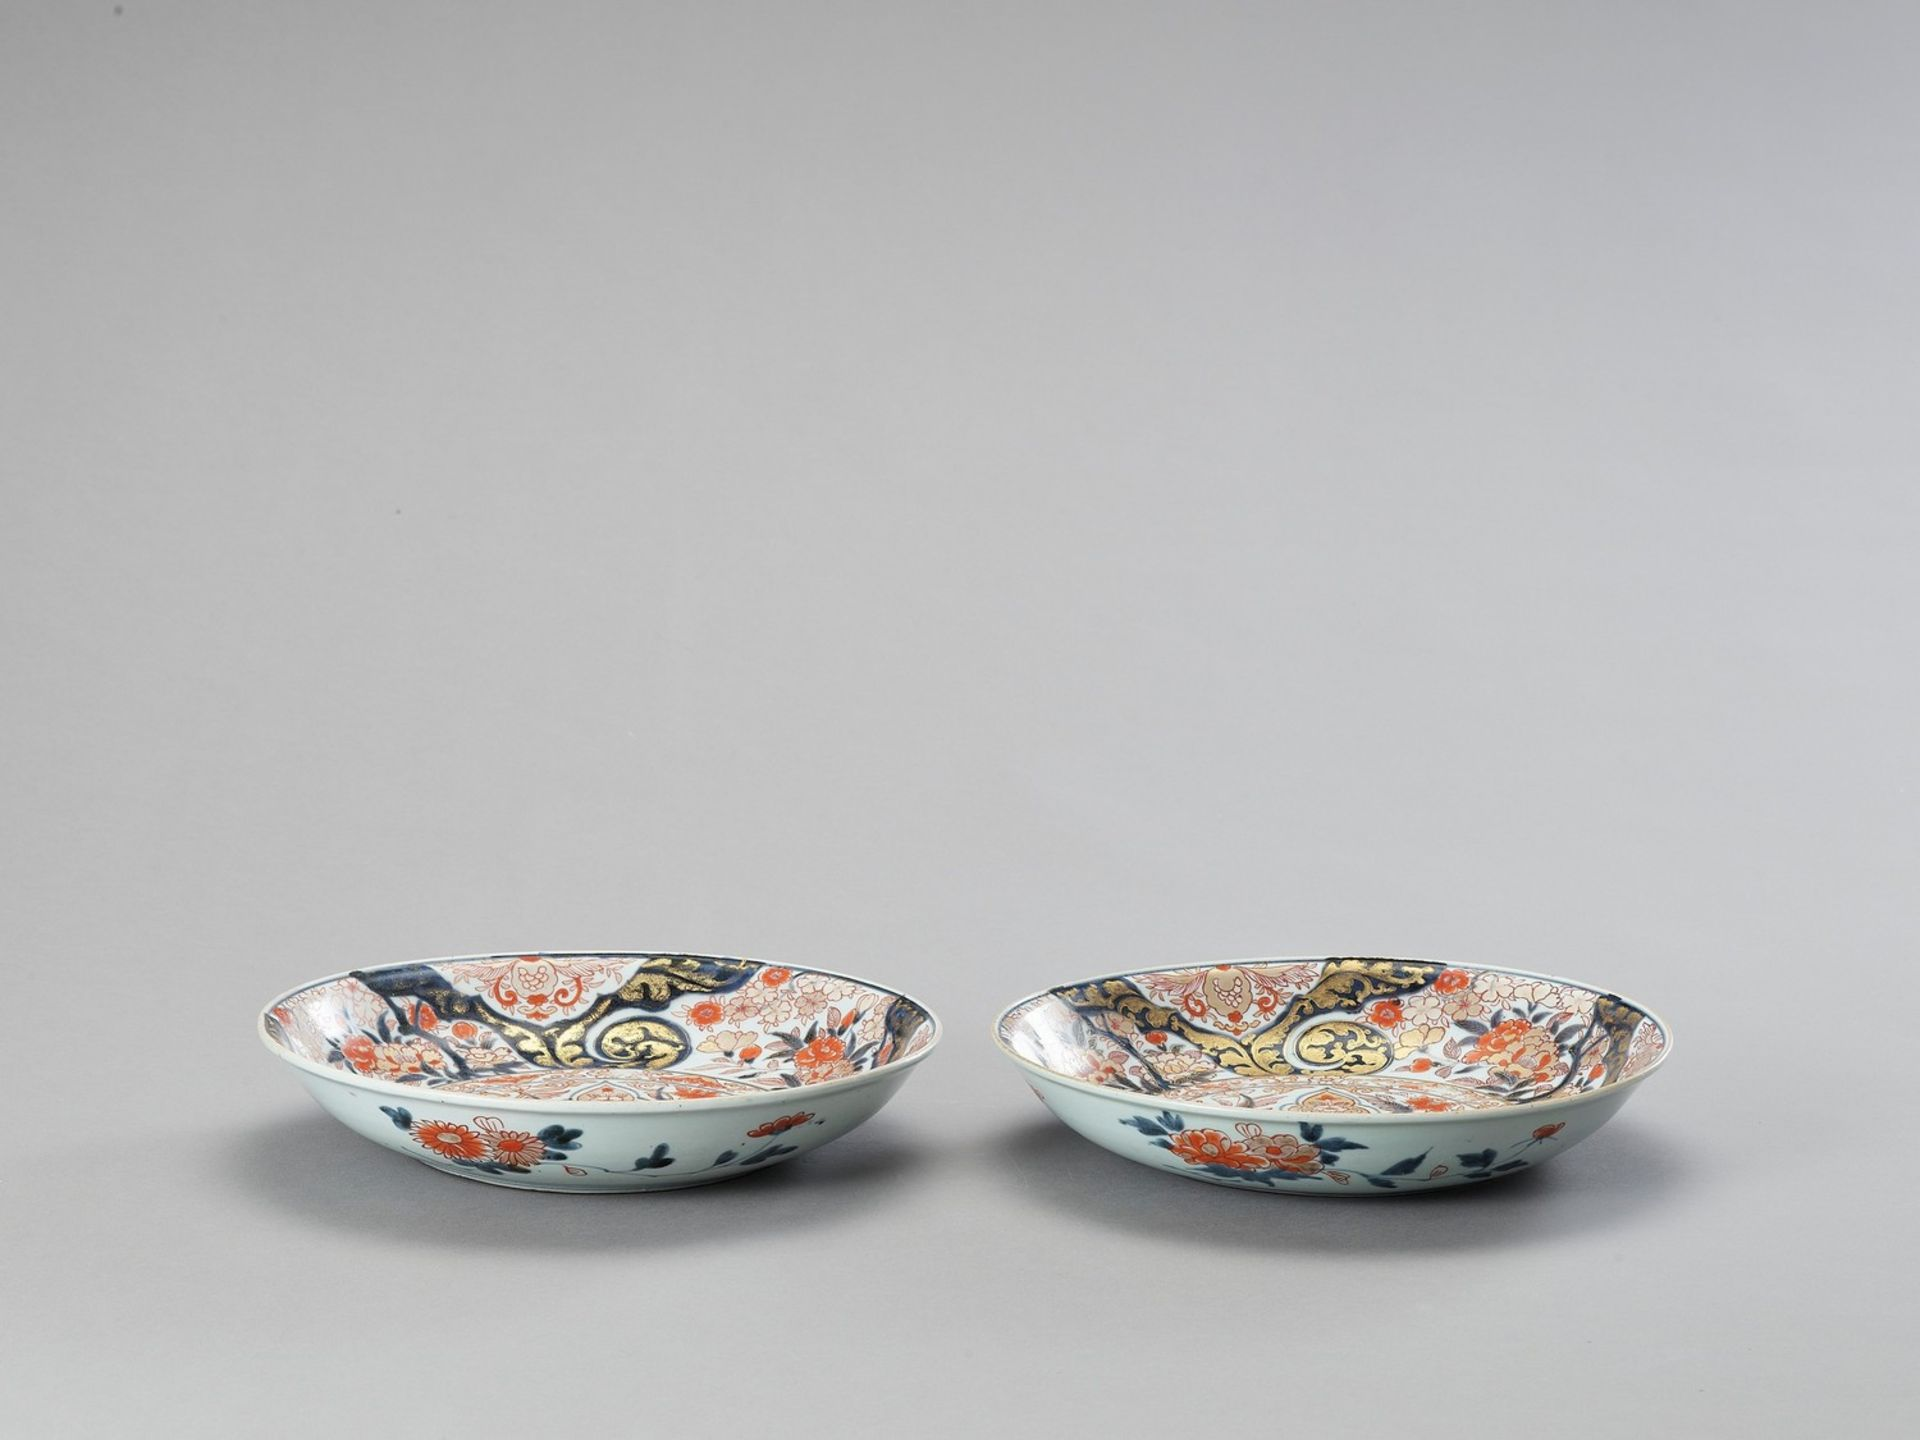 A PAIR OF IMARI PORCELAIN DISHES - Image 4 of 4